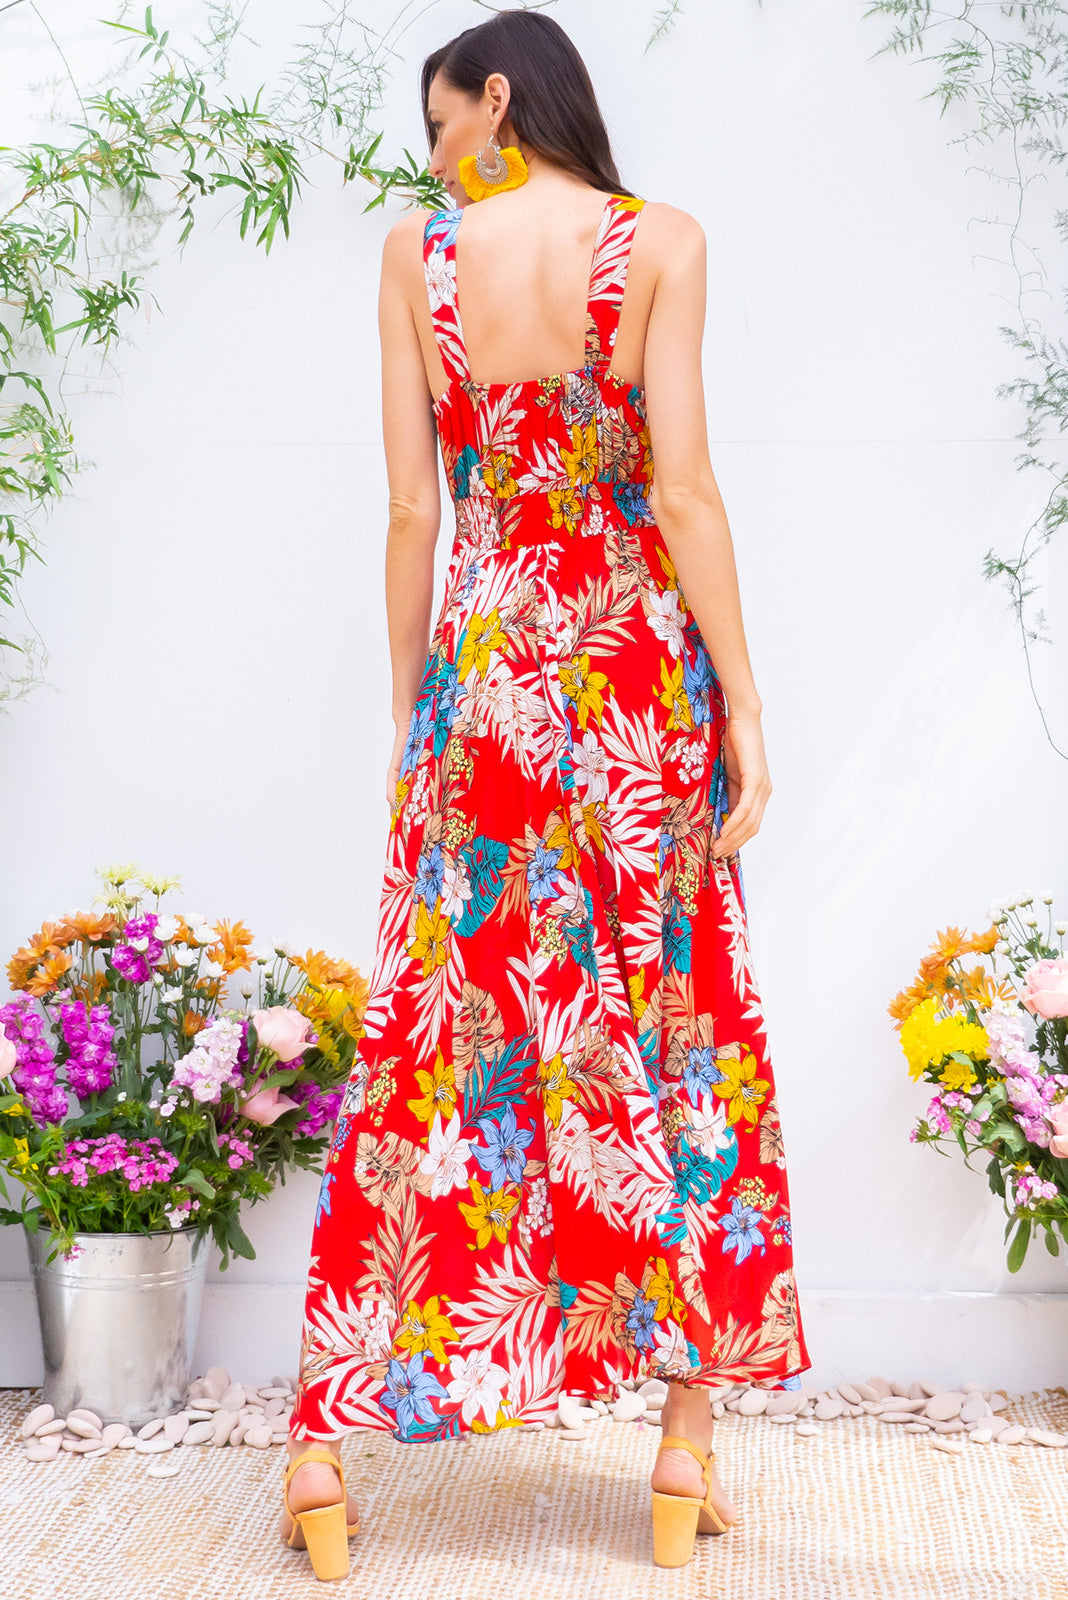 Lola Rouge Jungle Maxi Dress features a vintage inspired fitted basque waist and elasticated waist with a sleeveless design and deep v neck the fabric is a soft woven rayon in a bright red and multicoloured jungle print